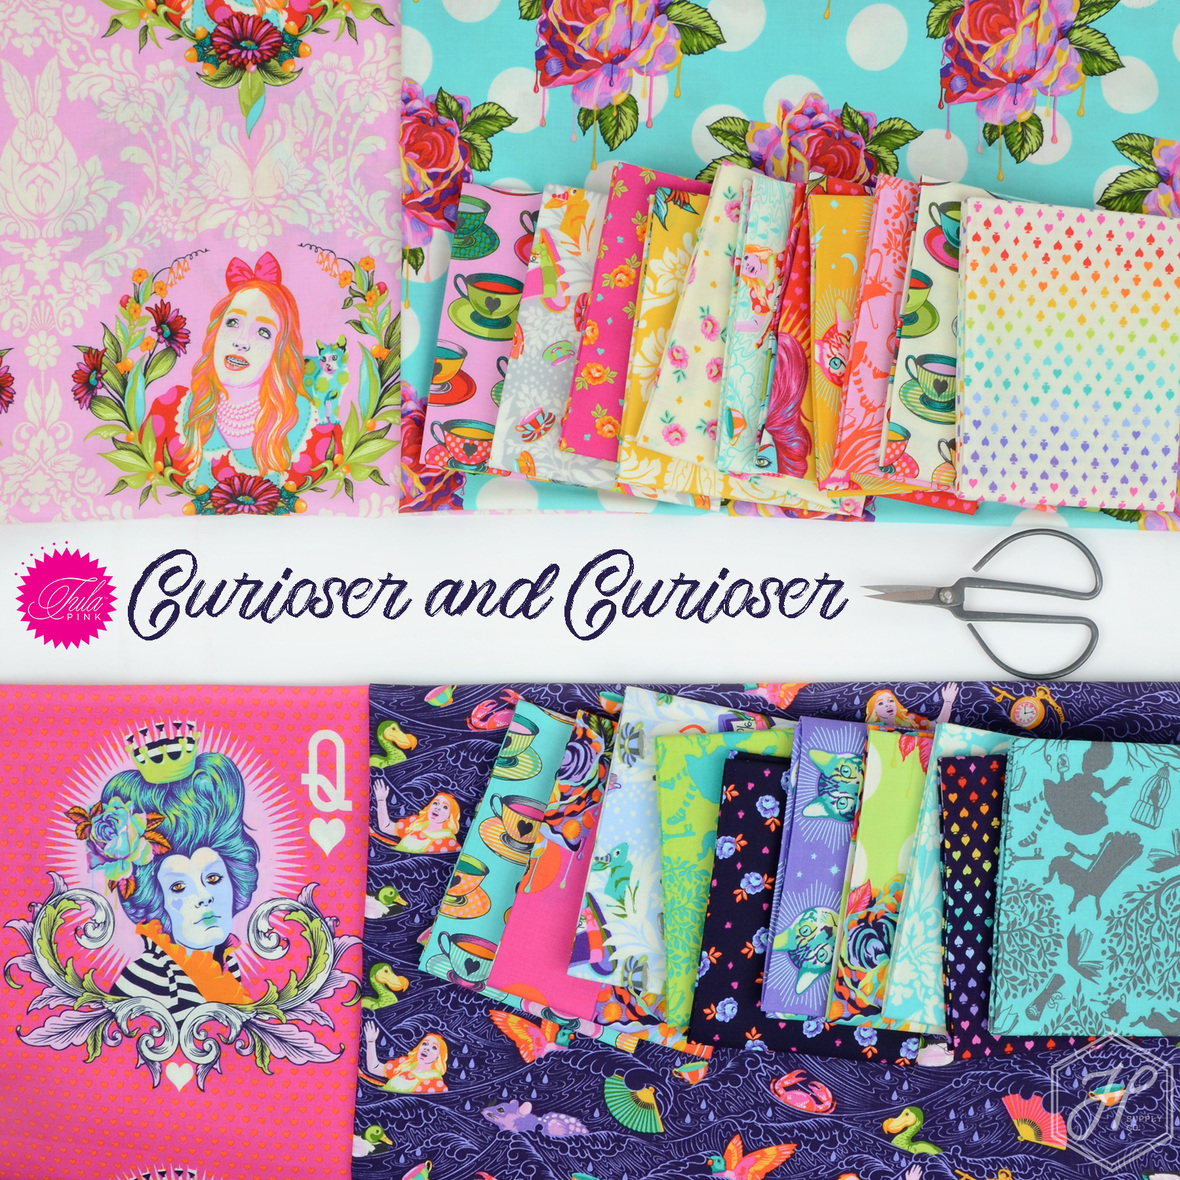 Curiouser-and-Curioser-Tula-Pink-fabric-for-Free-Spirt-at-Hawthorne-Supply-Co